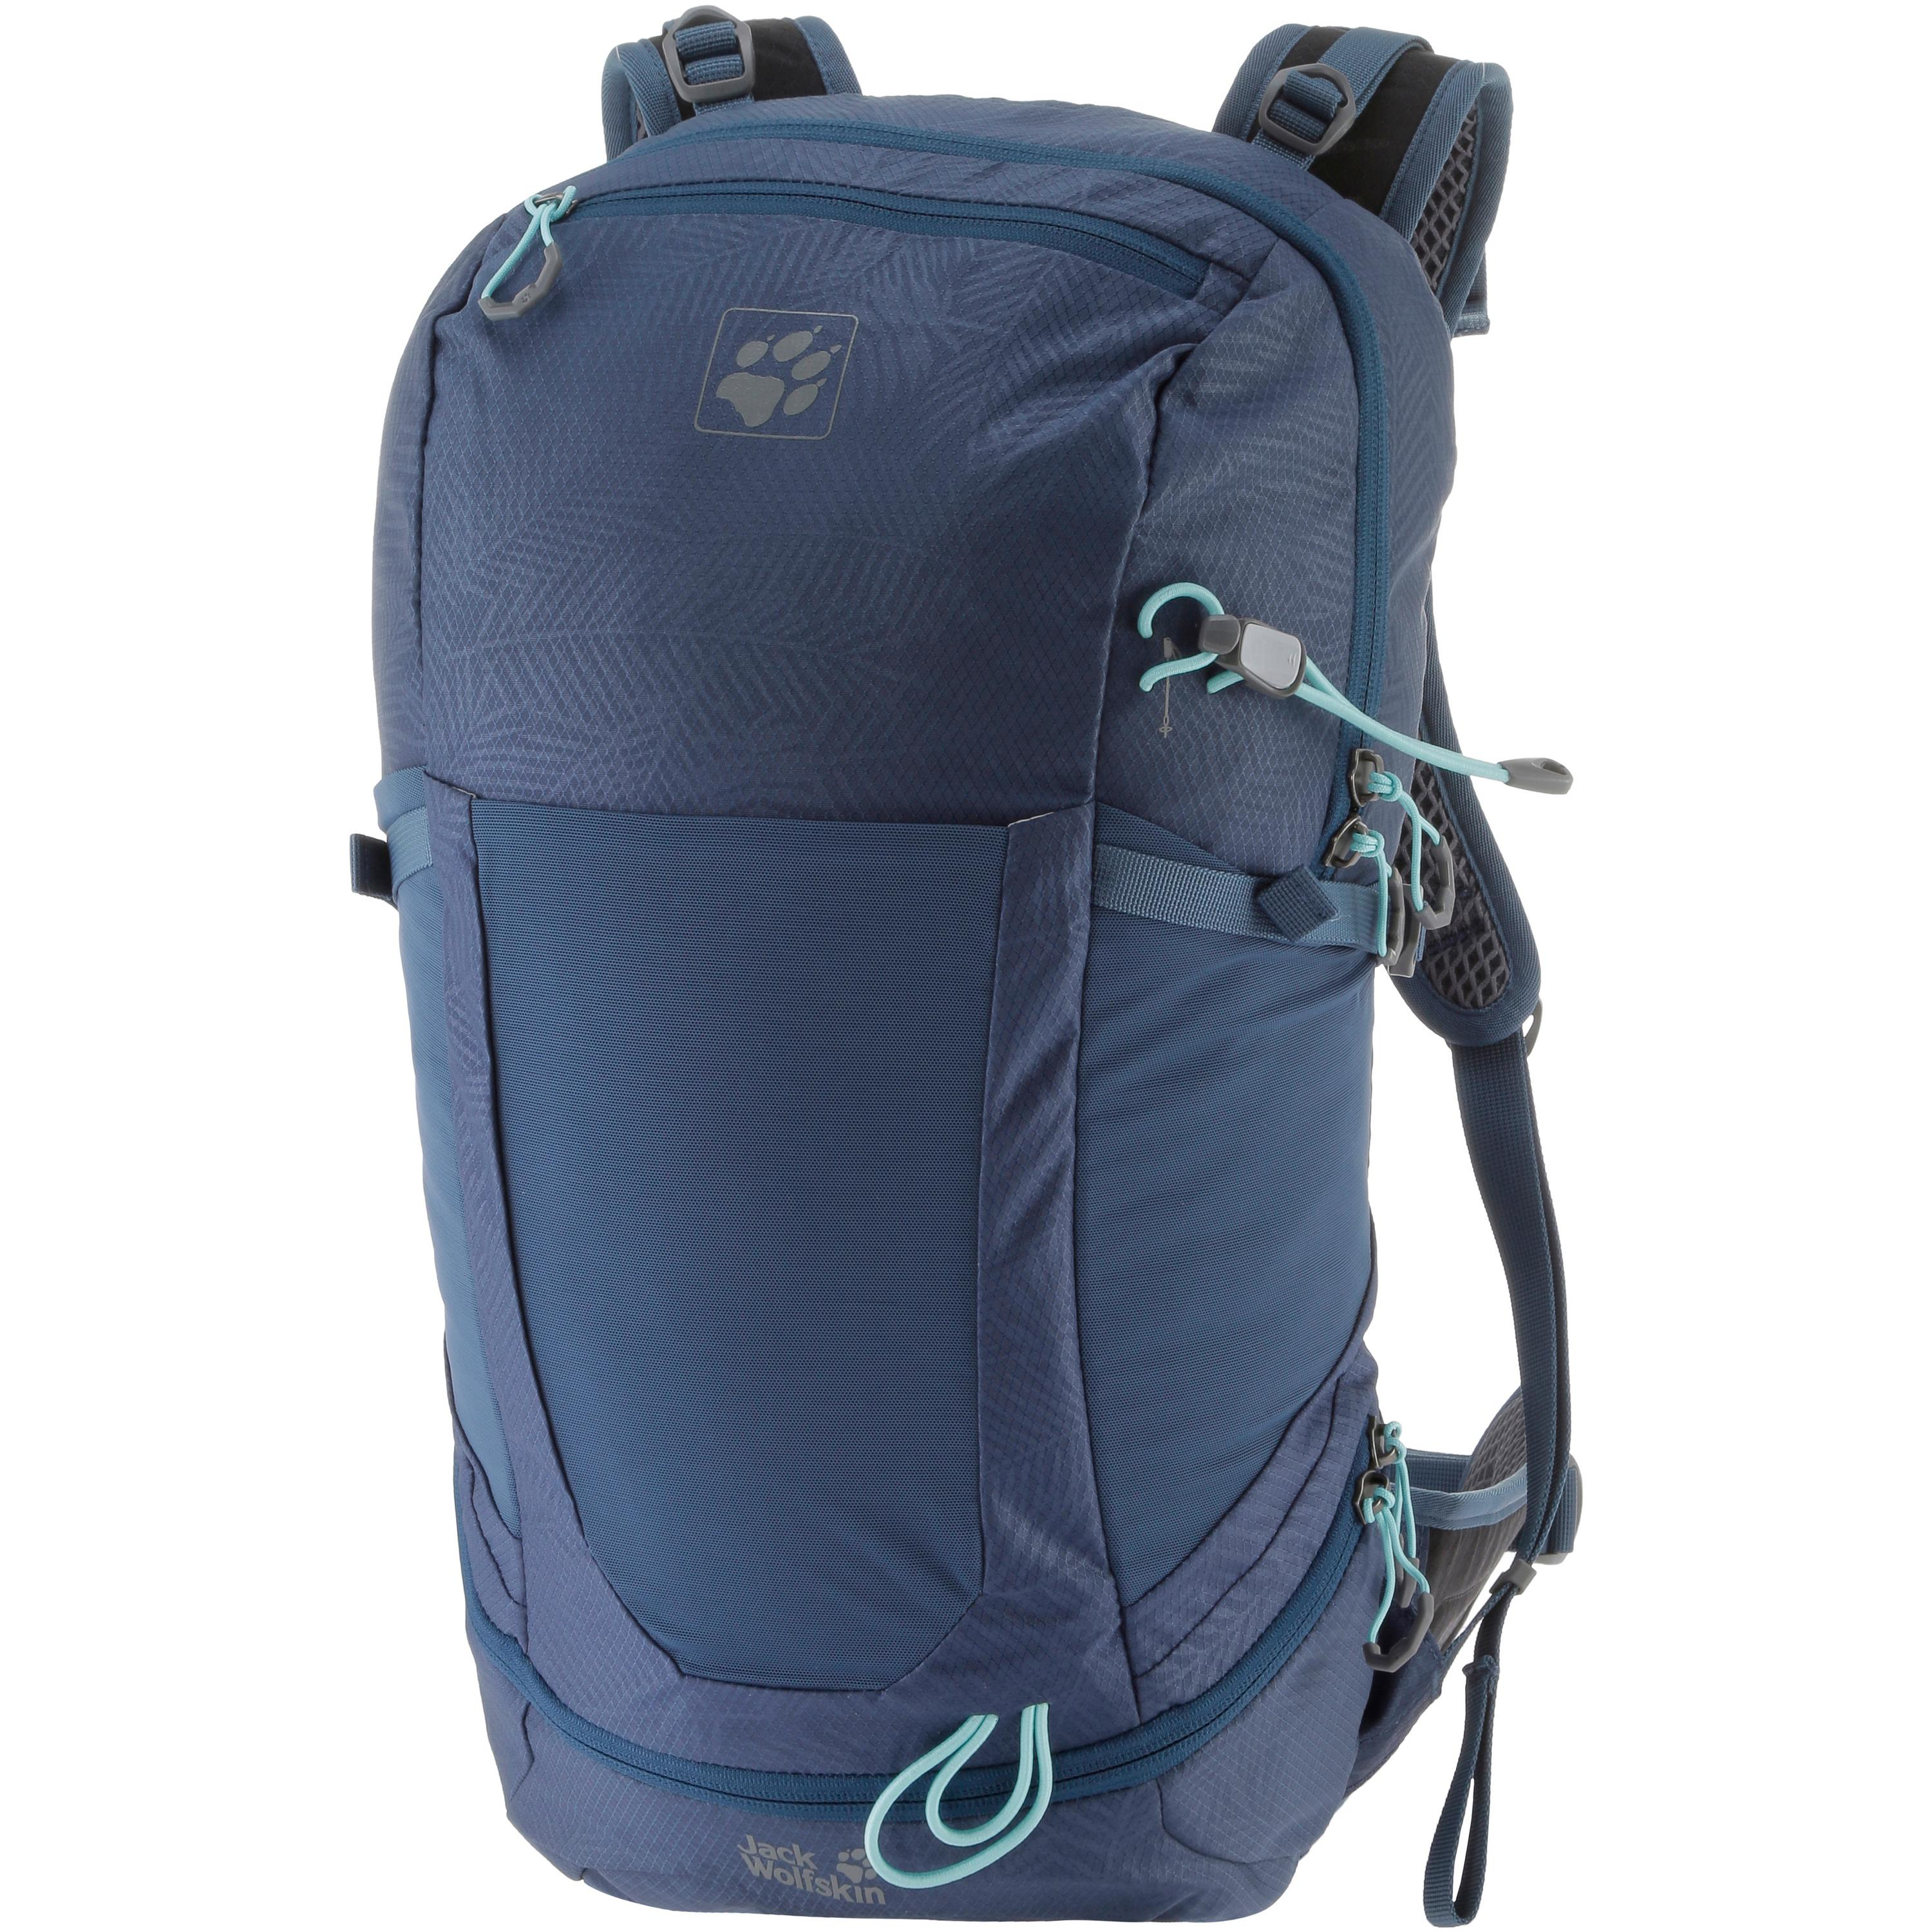 Kingston 22 Wanderrucksack